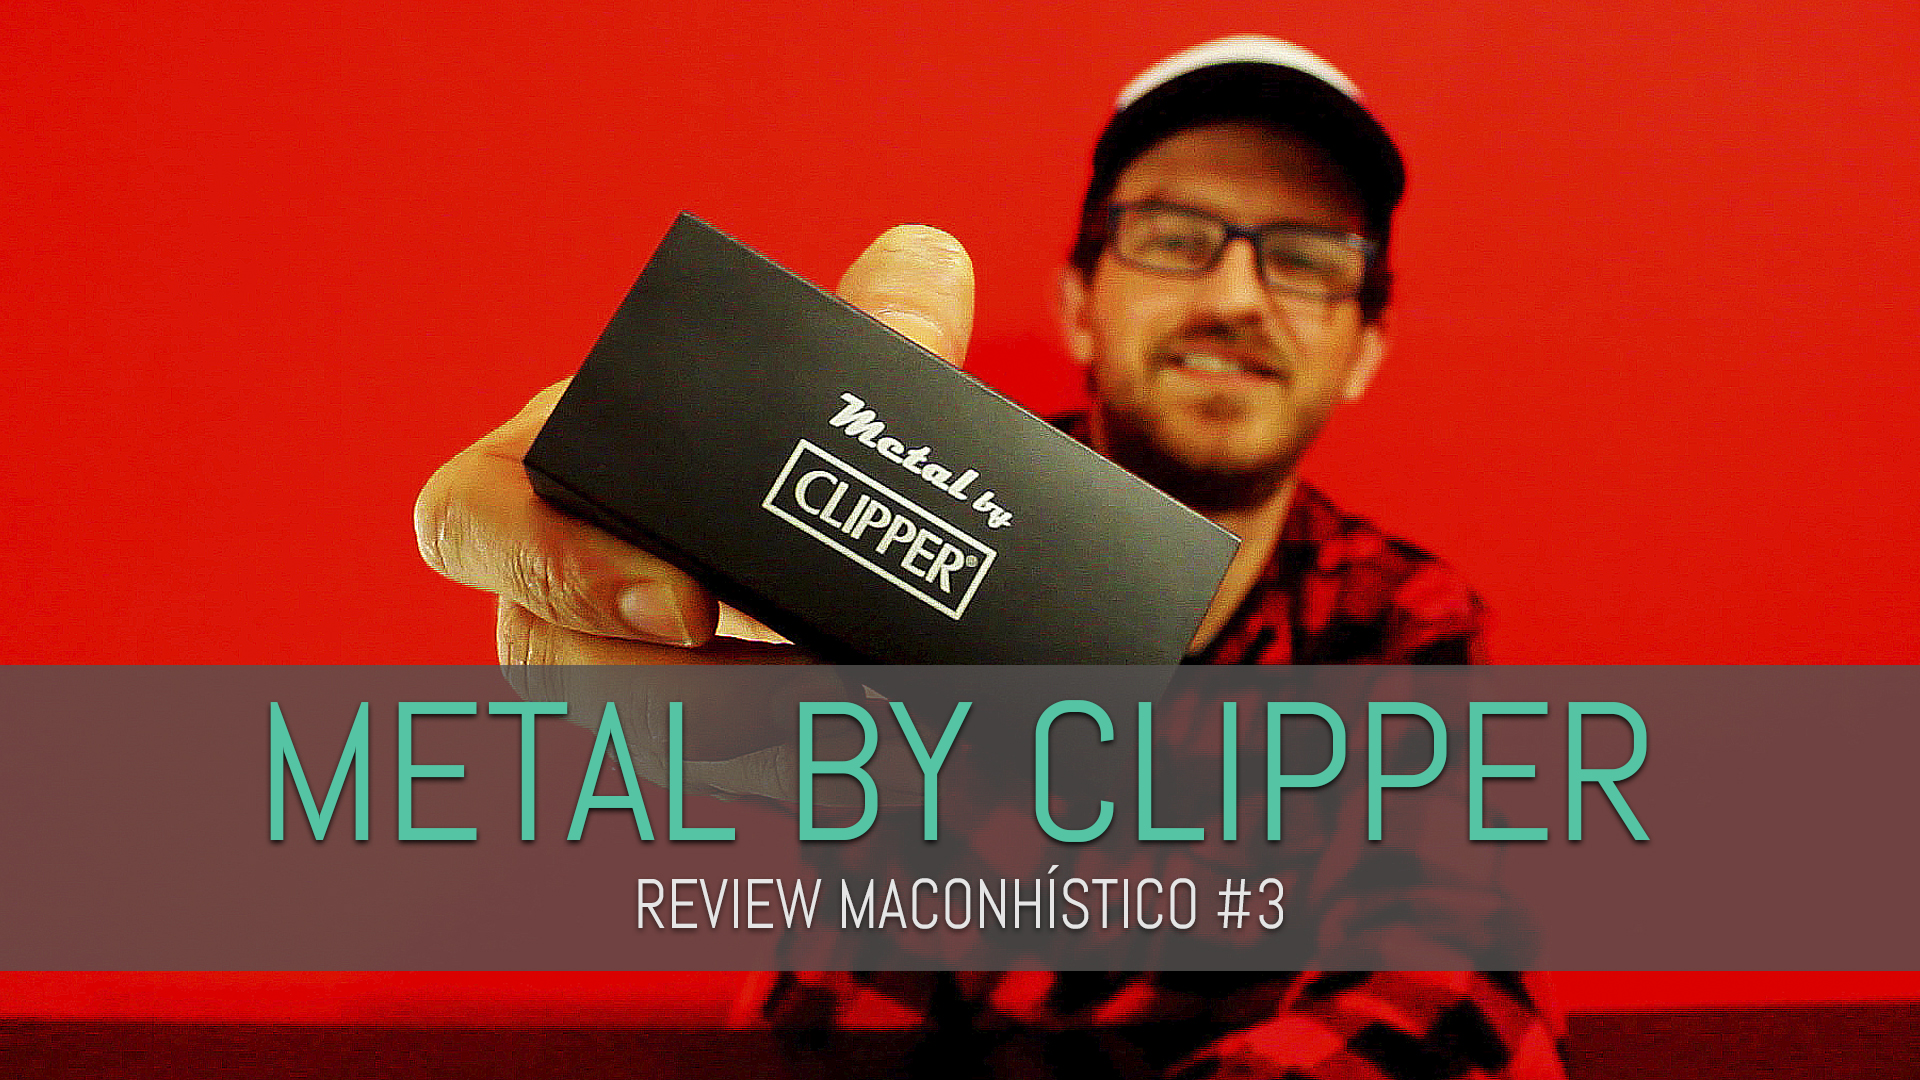 CAPA METAL BY CLIPPER REVIEW MACONHÍSTICO 3 METAL BY CLIPPER | REVIEW MACONHÍSTICO #3